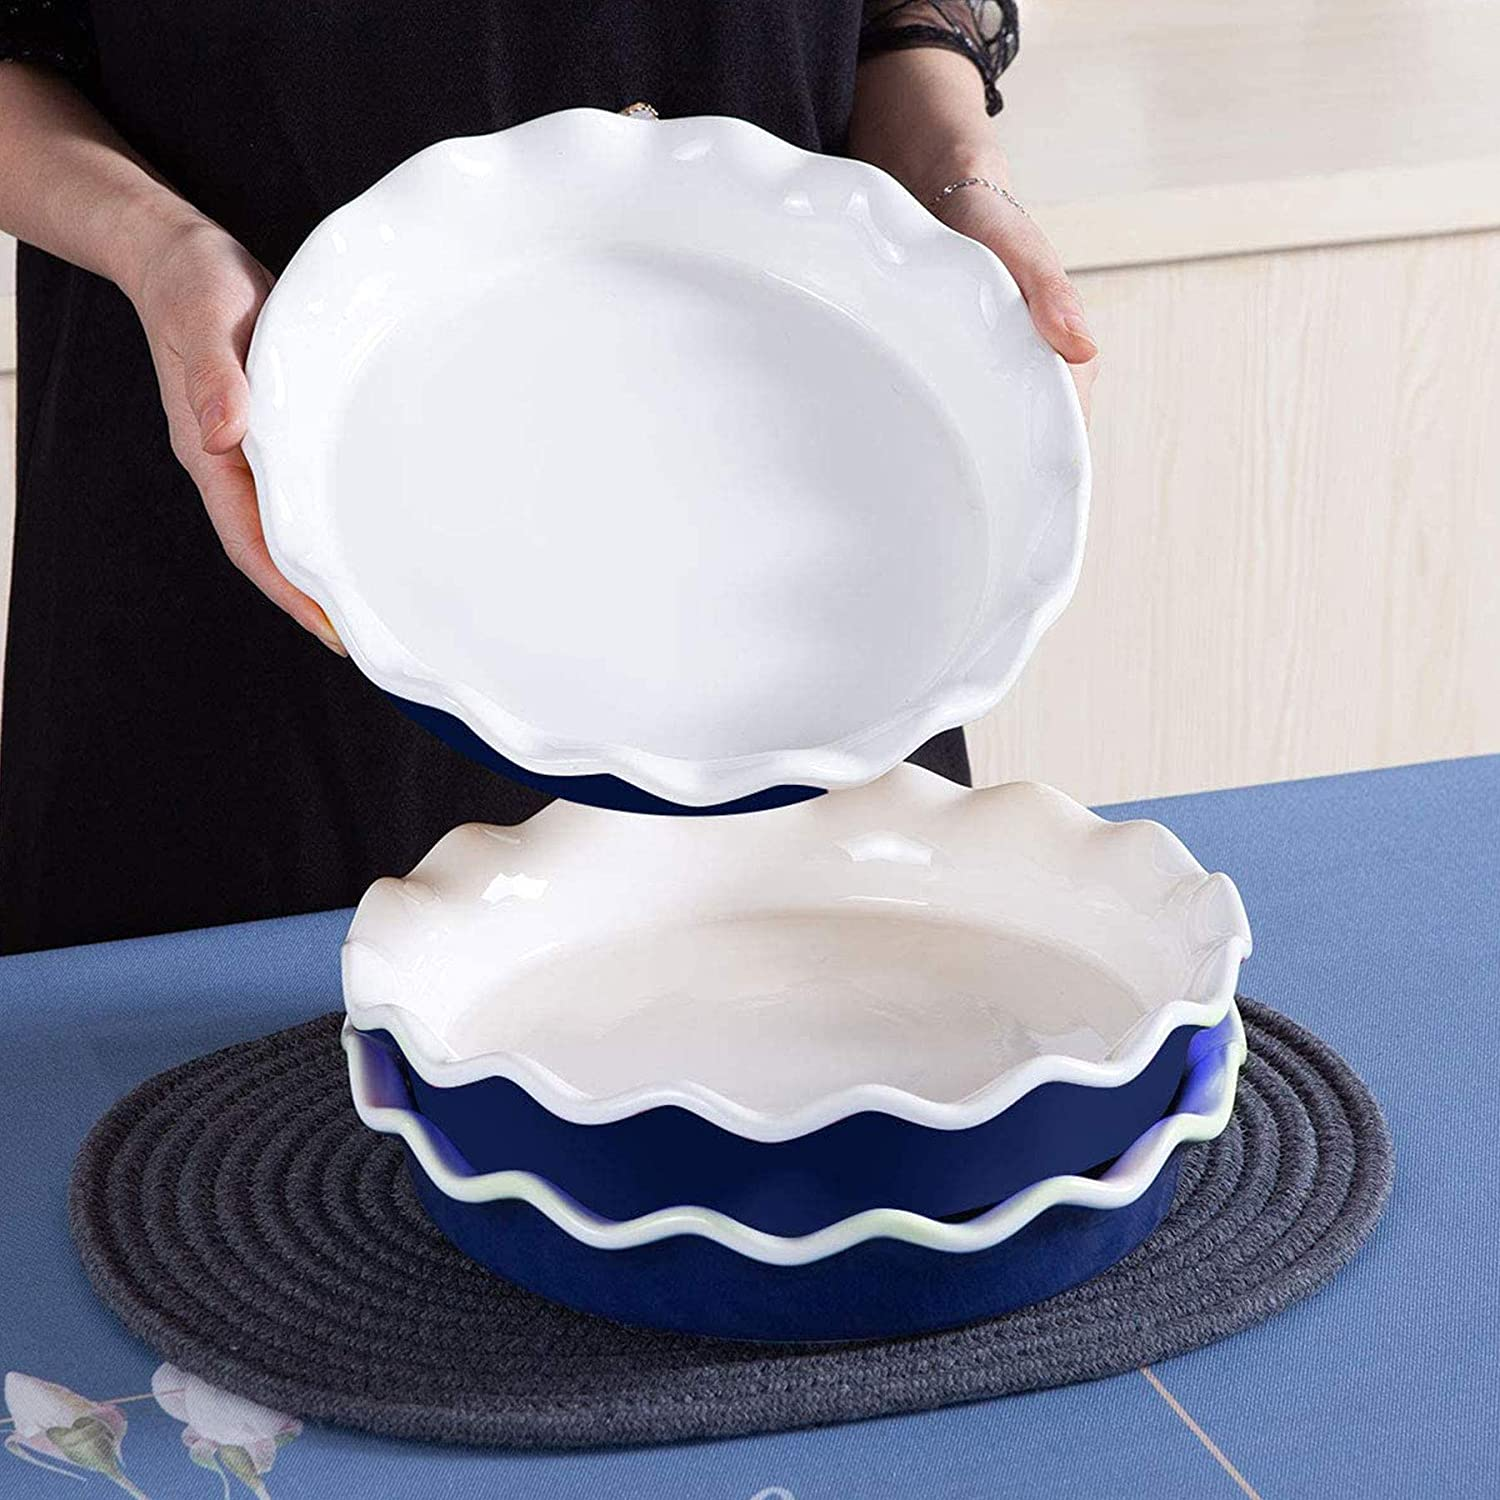 Round Quiche Pan Baking Dish for Pot Pies Cake Pizza Dessert 10 inch Pie Dish Pie Plates SIDUCAL Ceramic Pie Pan Classic Blue